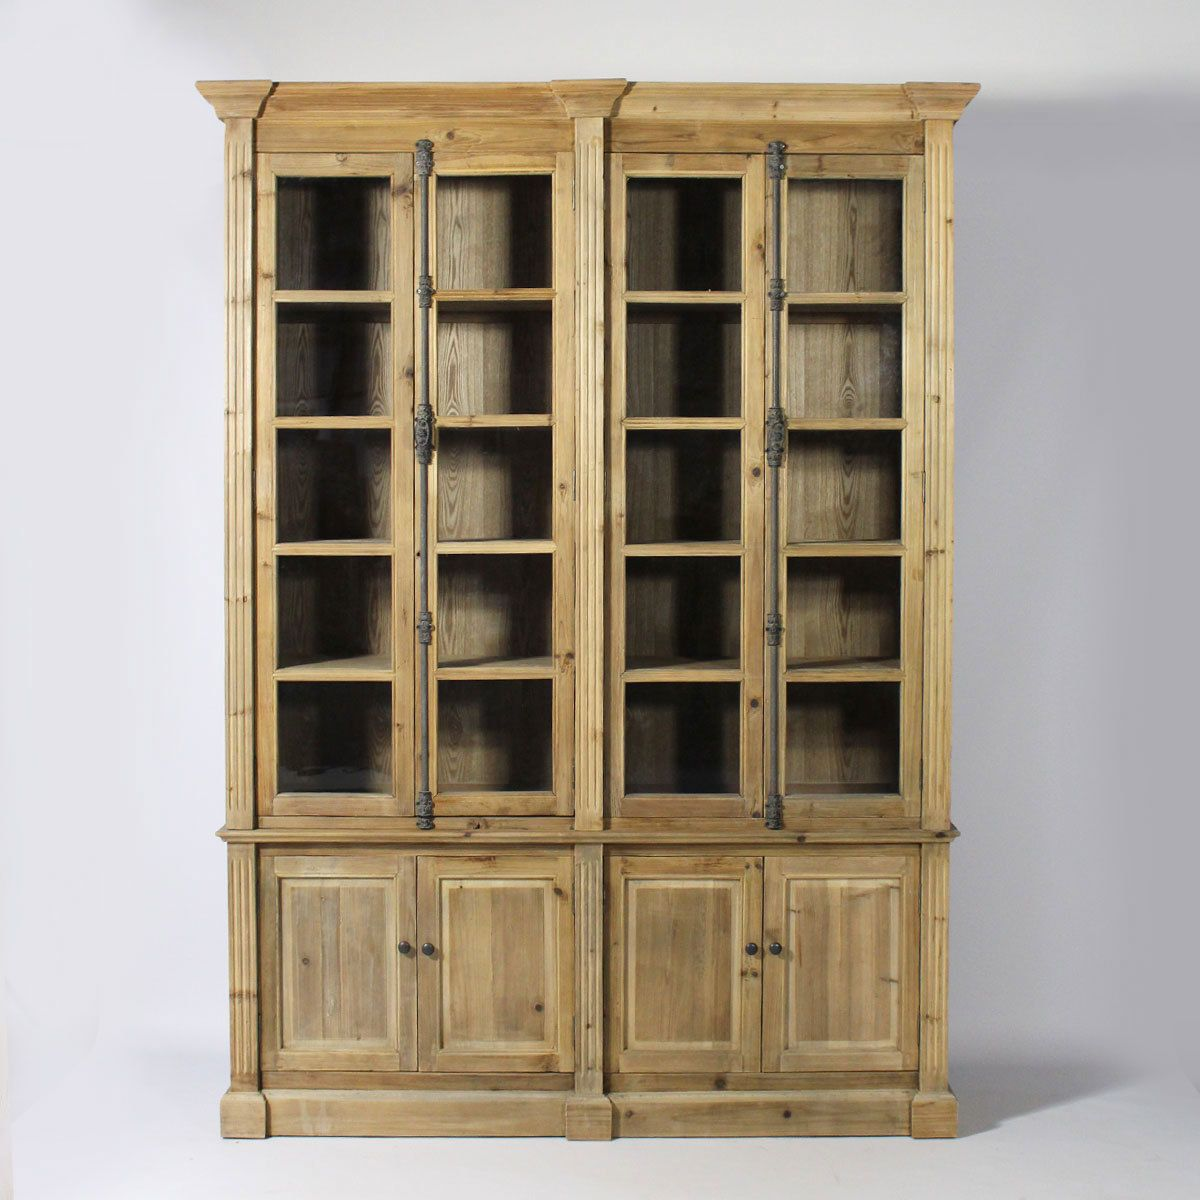 meuble biblioth que en bois recycl biblioth que vitr e. Black Bedroom Furniture Sets. Home Design Ideas